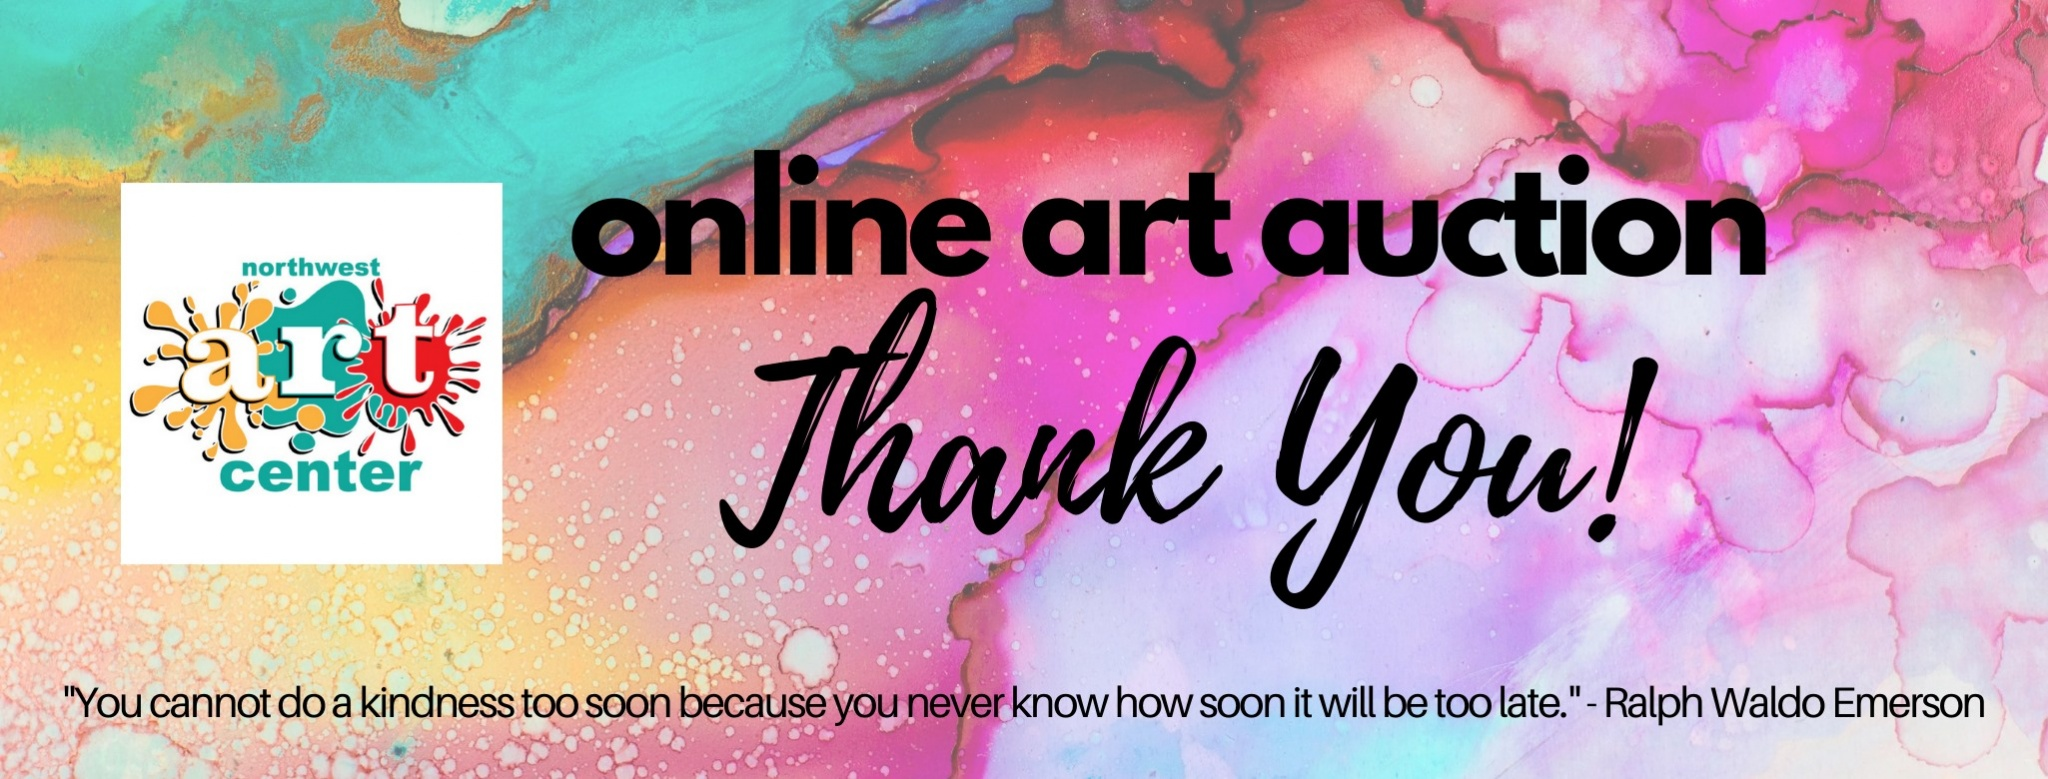 virtualartauction